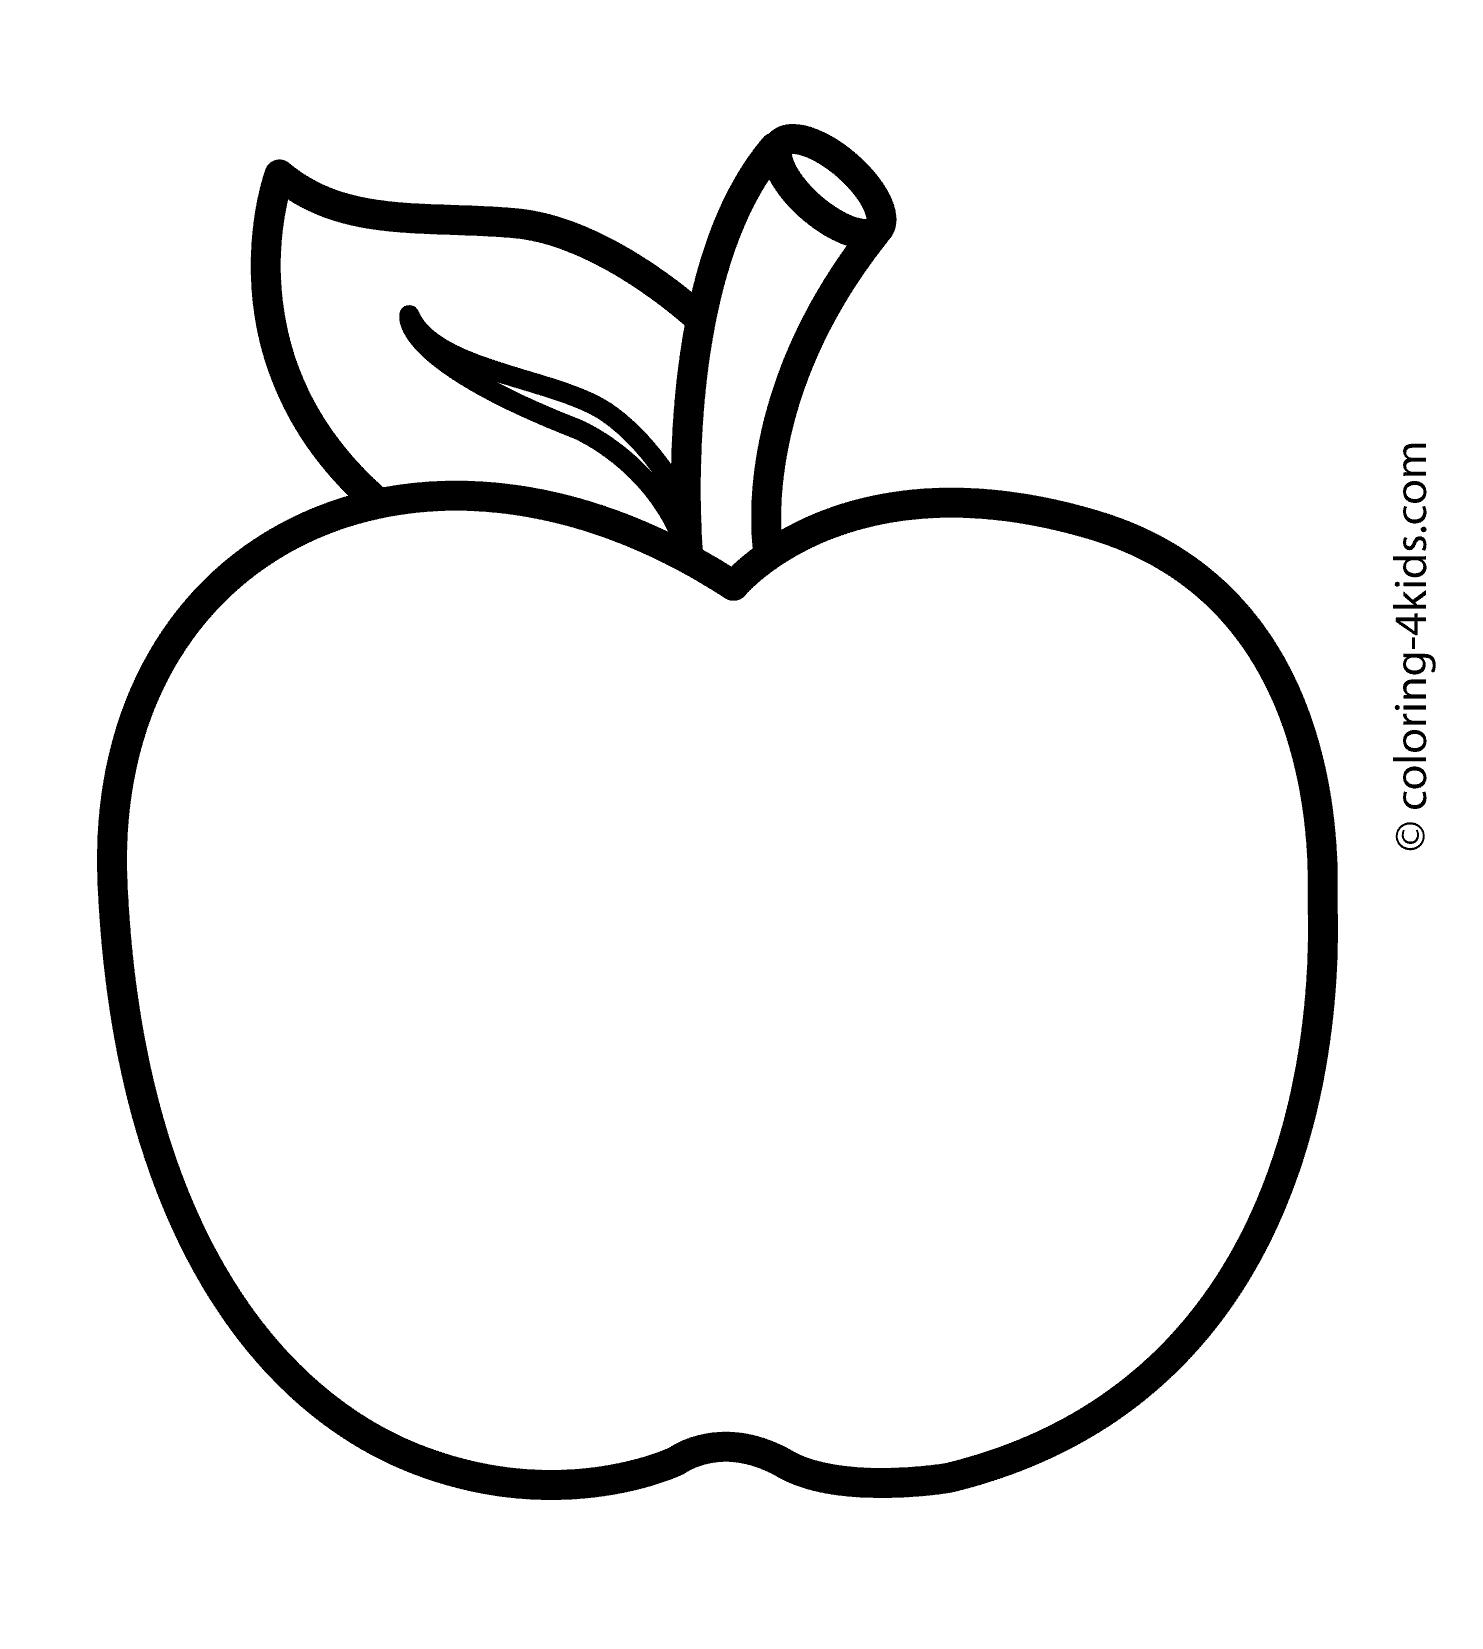 coloring pages apple apple coloring pages fotolipcom rich image and wallpaper coloring pages apple